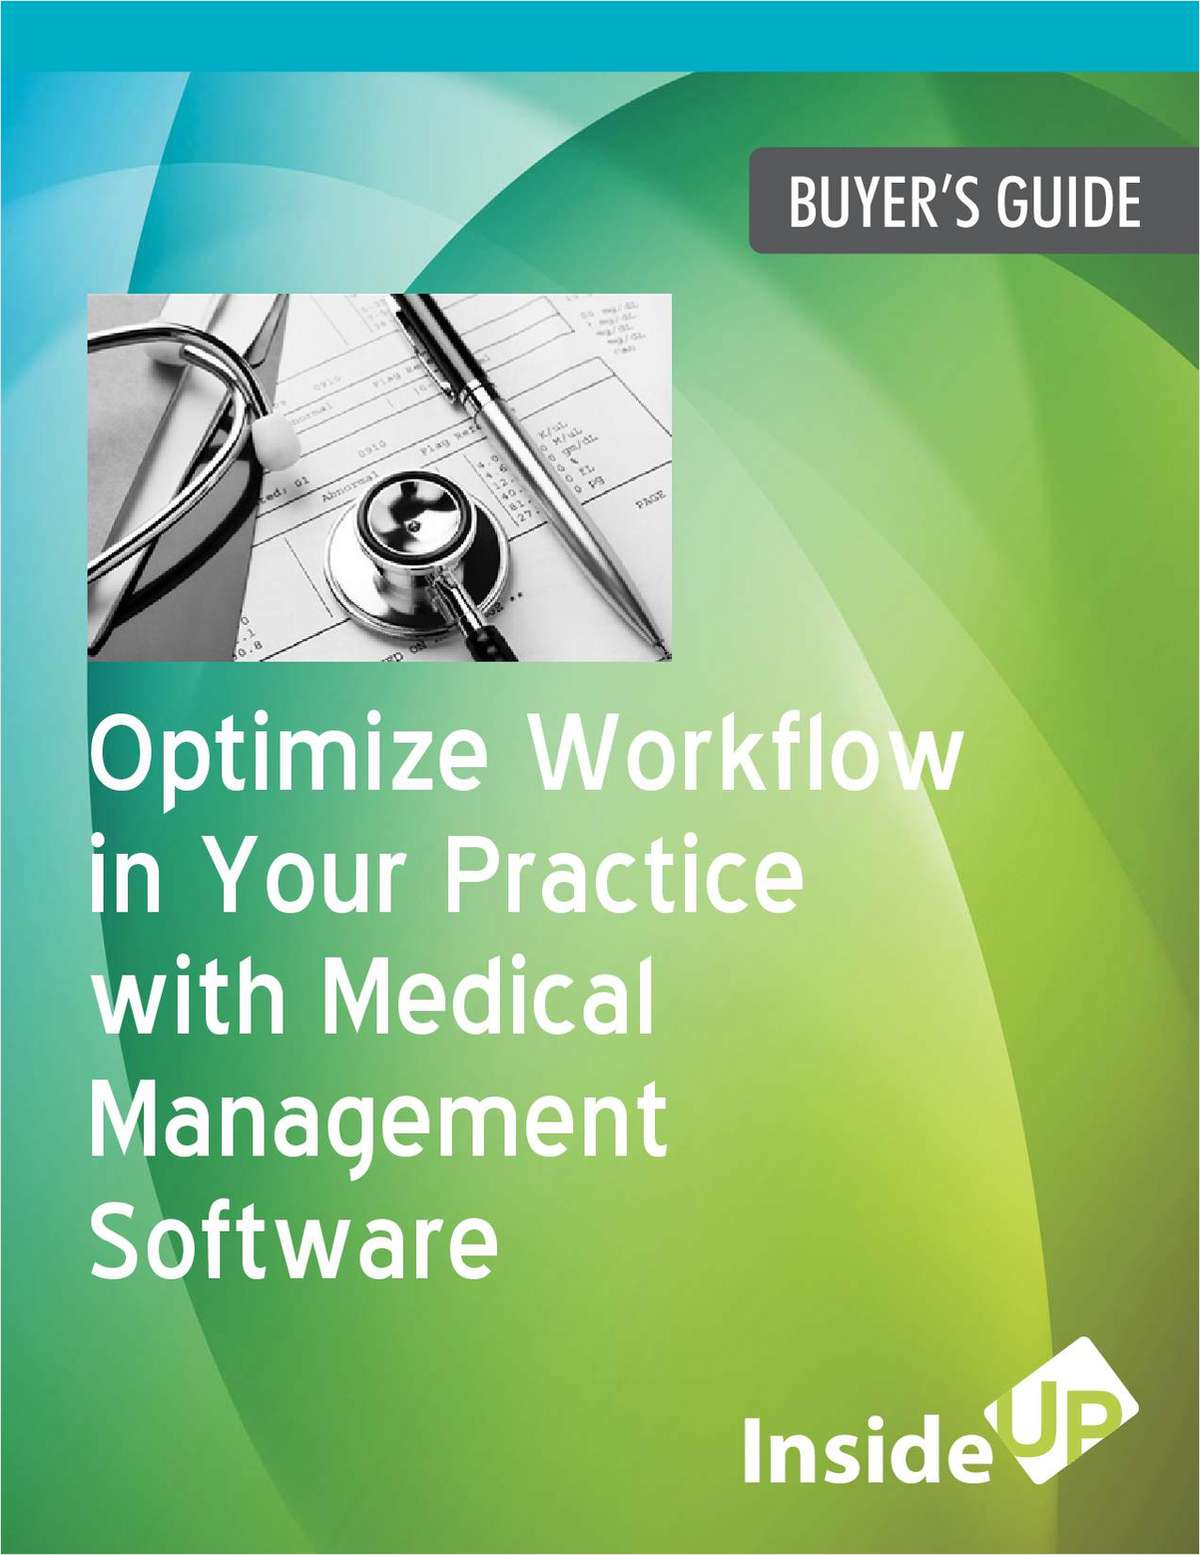 Optimize Workflow in Your Practice with Medical Management Software